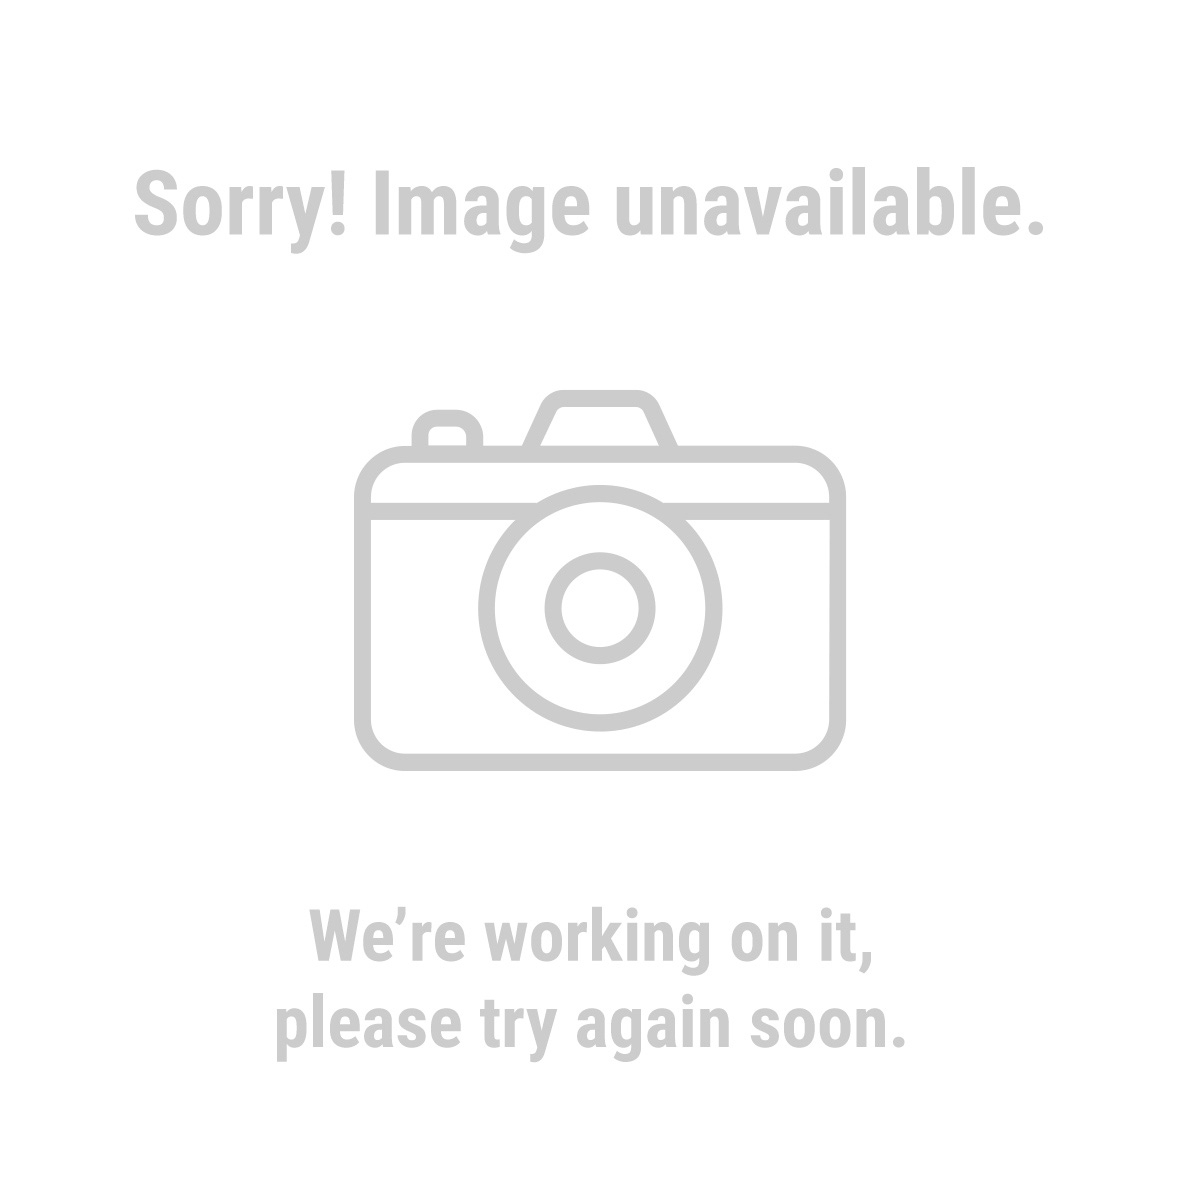 HFT® 61577 50 Piece Trash Bags - 33 gal.